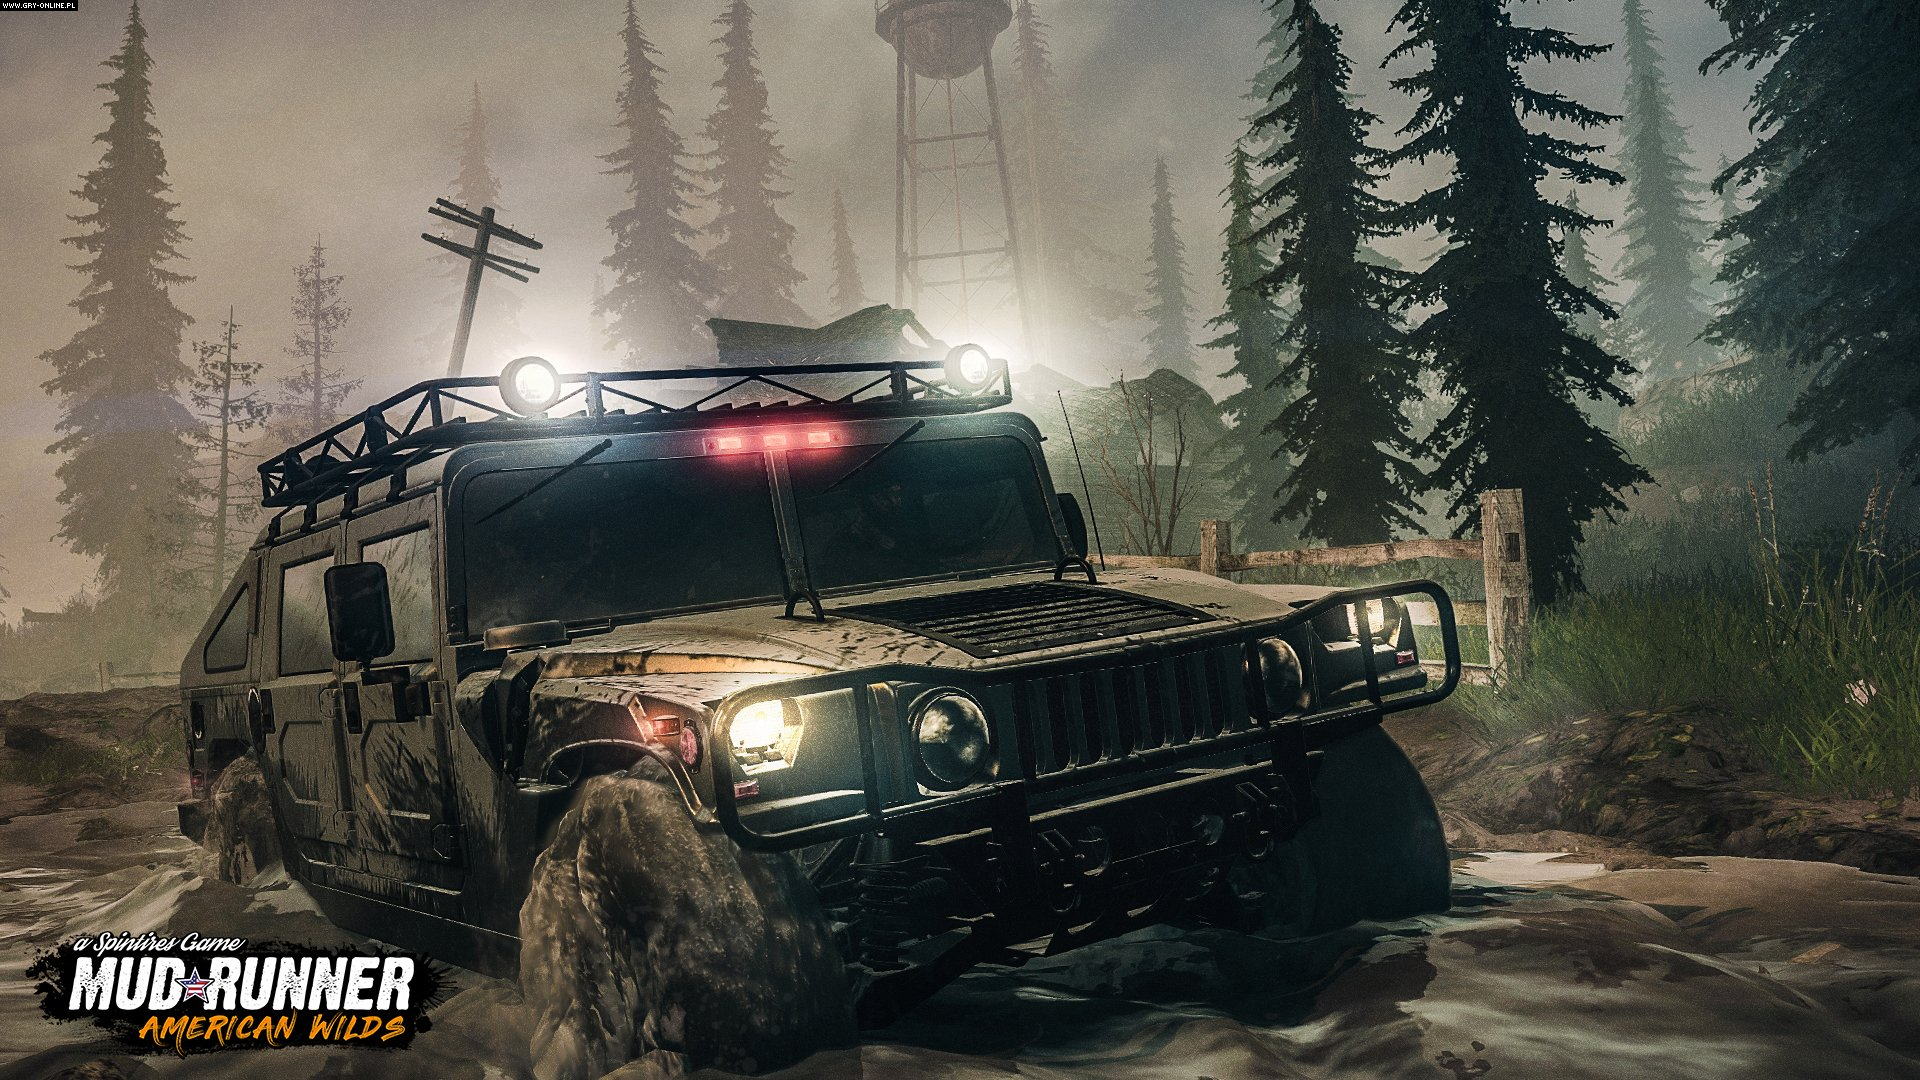 Spintires: MudRunner - American Wilds PC, PS4, XONE Gry Screen 2/3, Saber Interactive, Focus Home Interactive